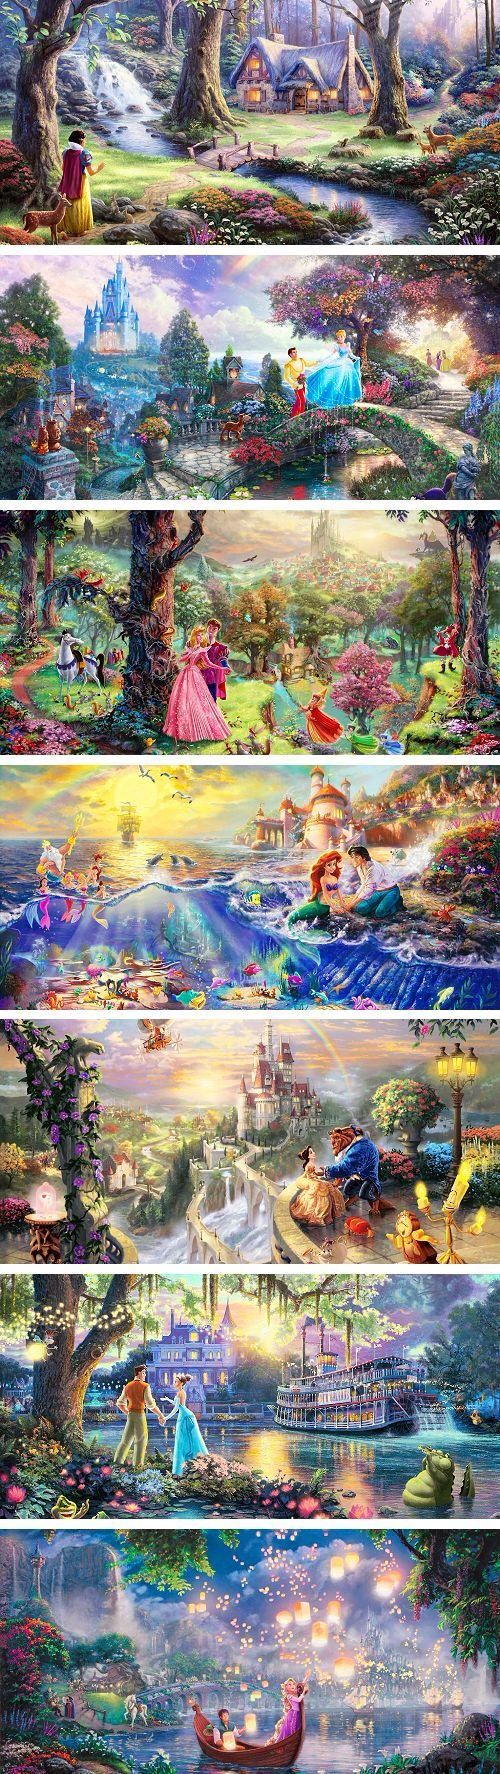 Thomas kinkade. Disney princesses; I love these paintings! But the link won't lead you to where ever you can find them it's a quiz... Wah Wah :(